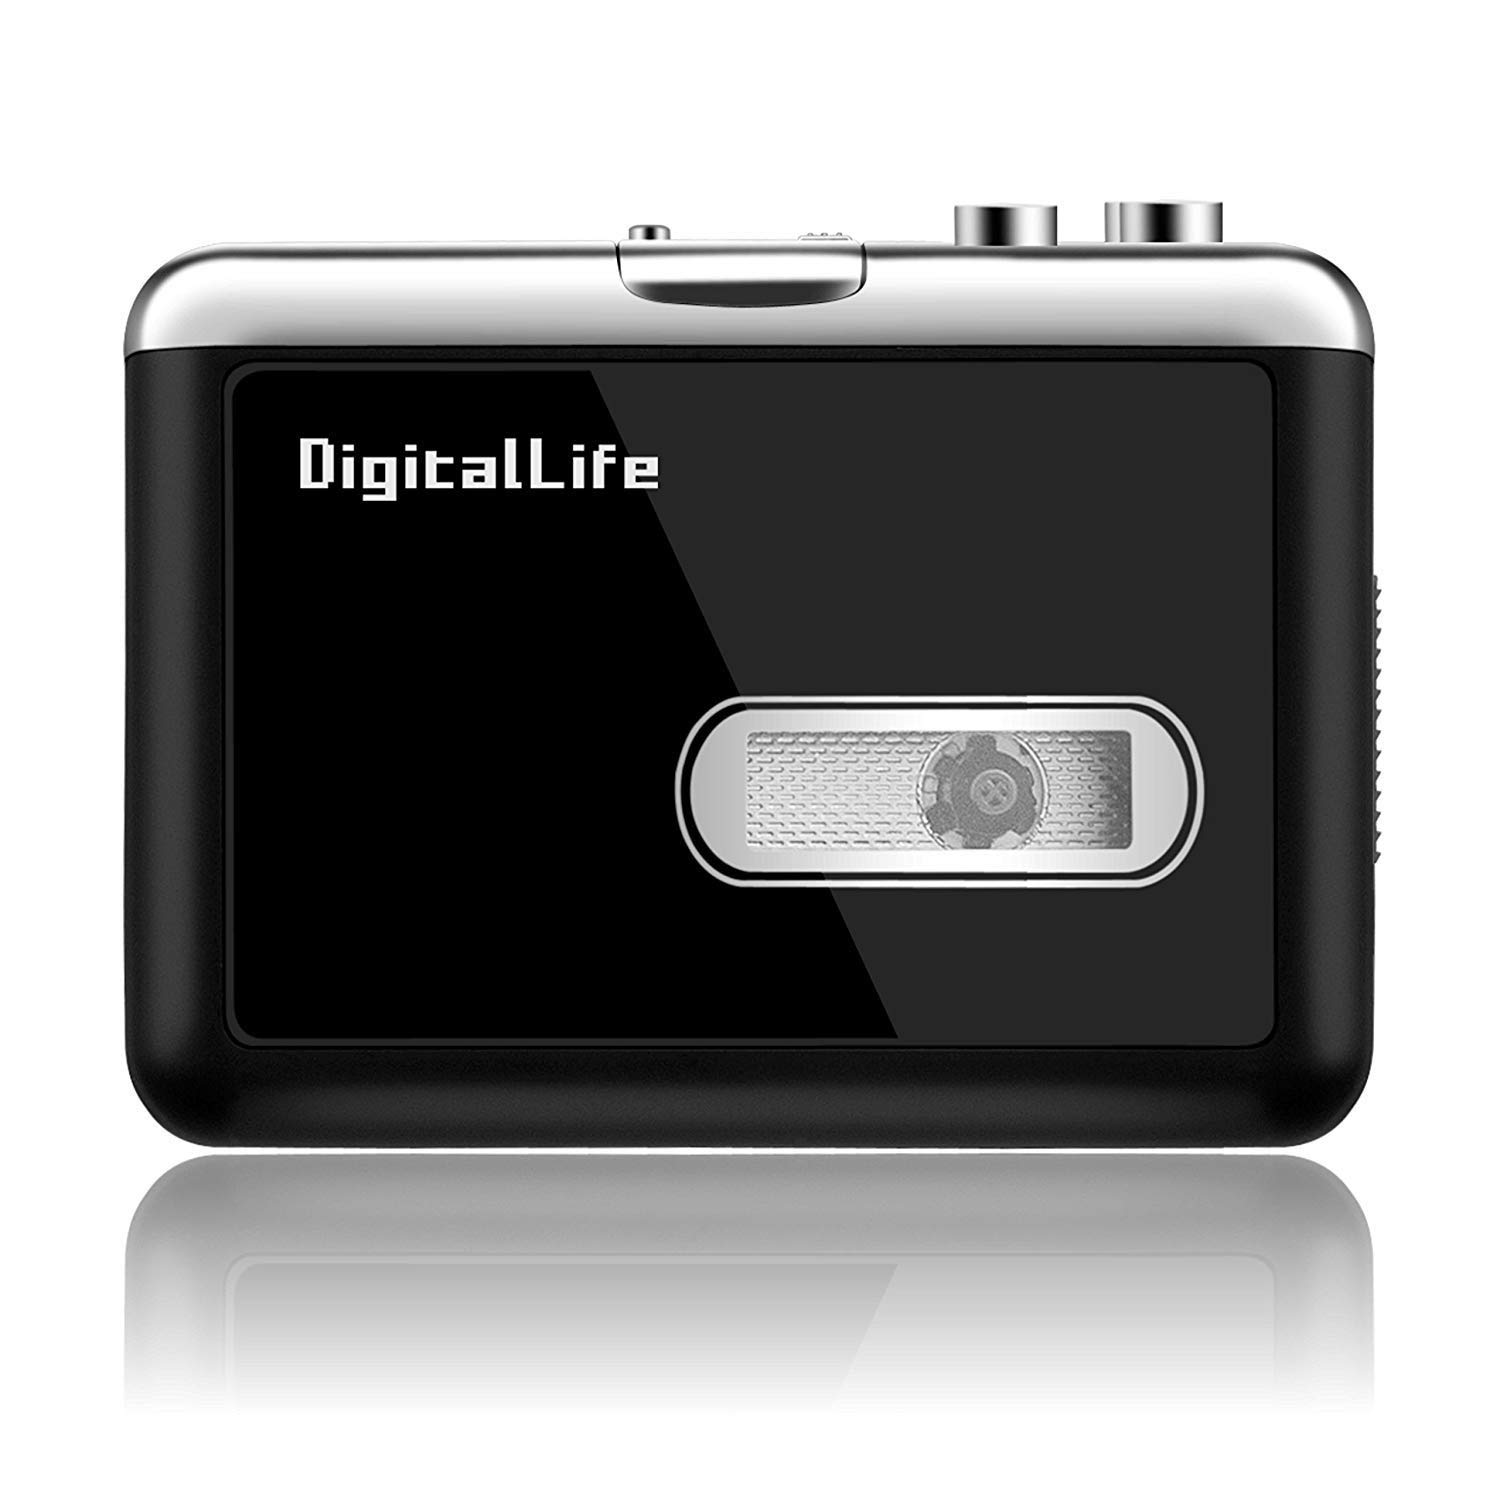 DigitalLife Lecteur Cassette Audio - Walkman Cassette MP3 Enregistreur - Lecteur Cassette Audio Convertisseur - Convertisseur Cassette vers MP3, No Need PC